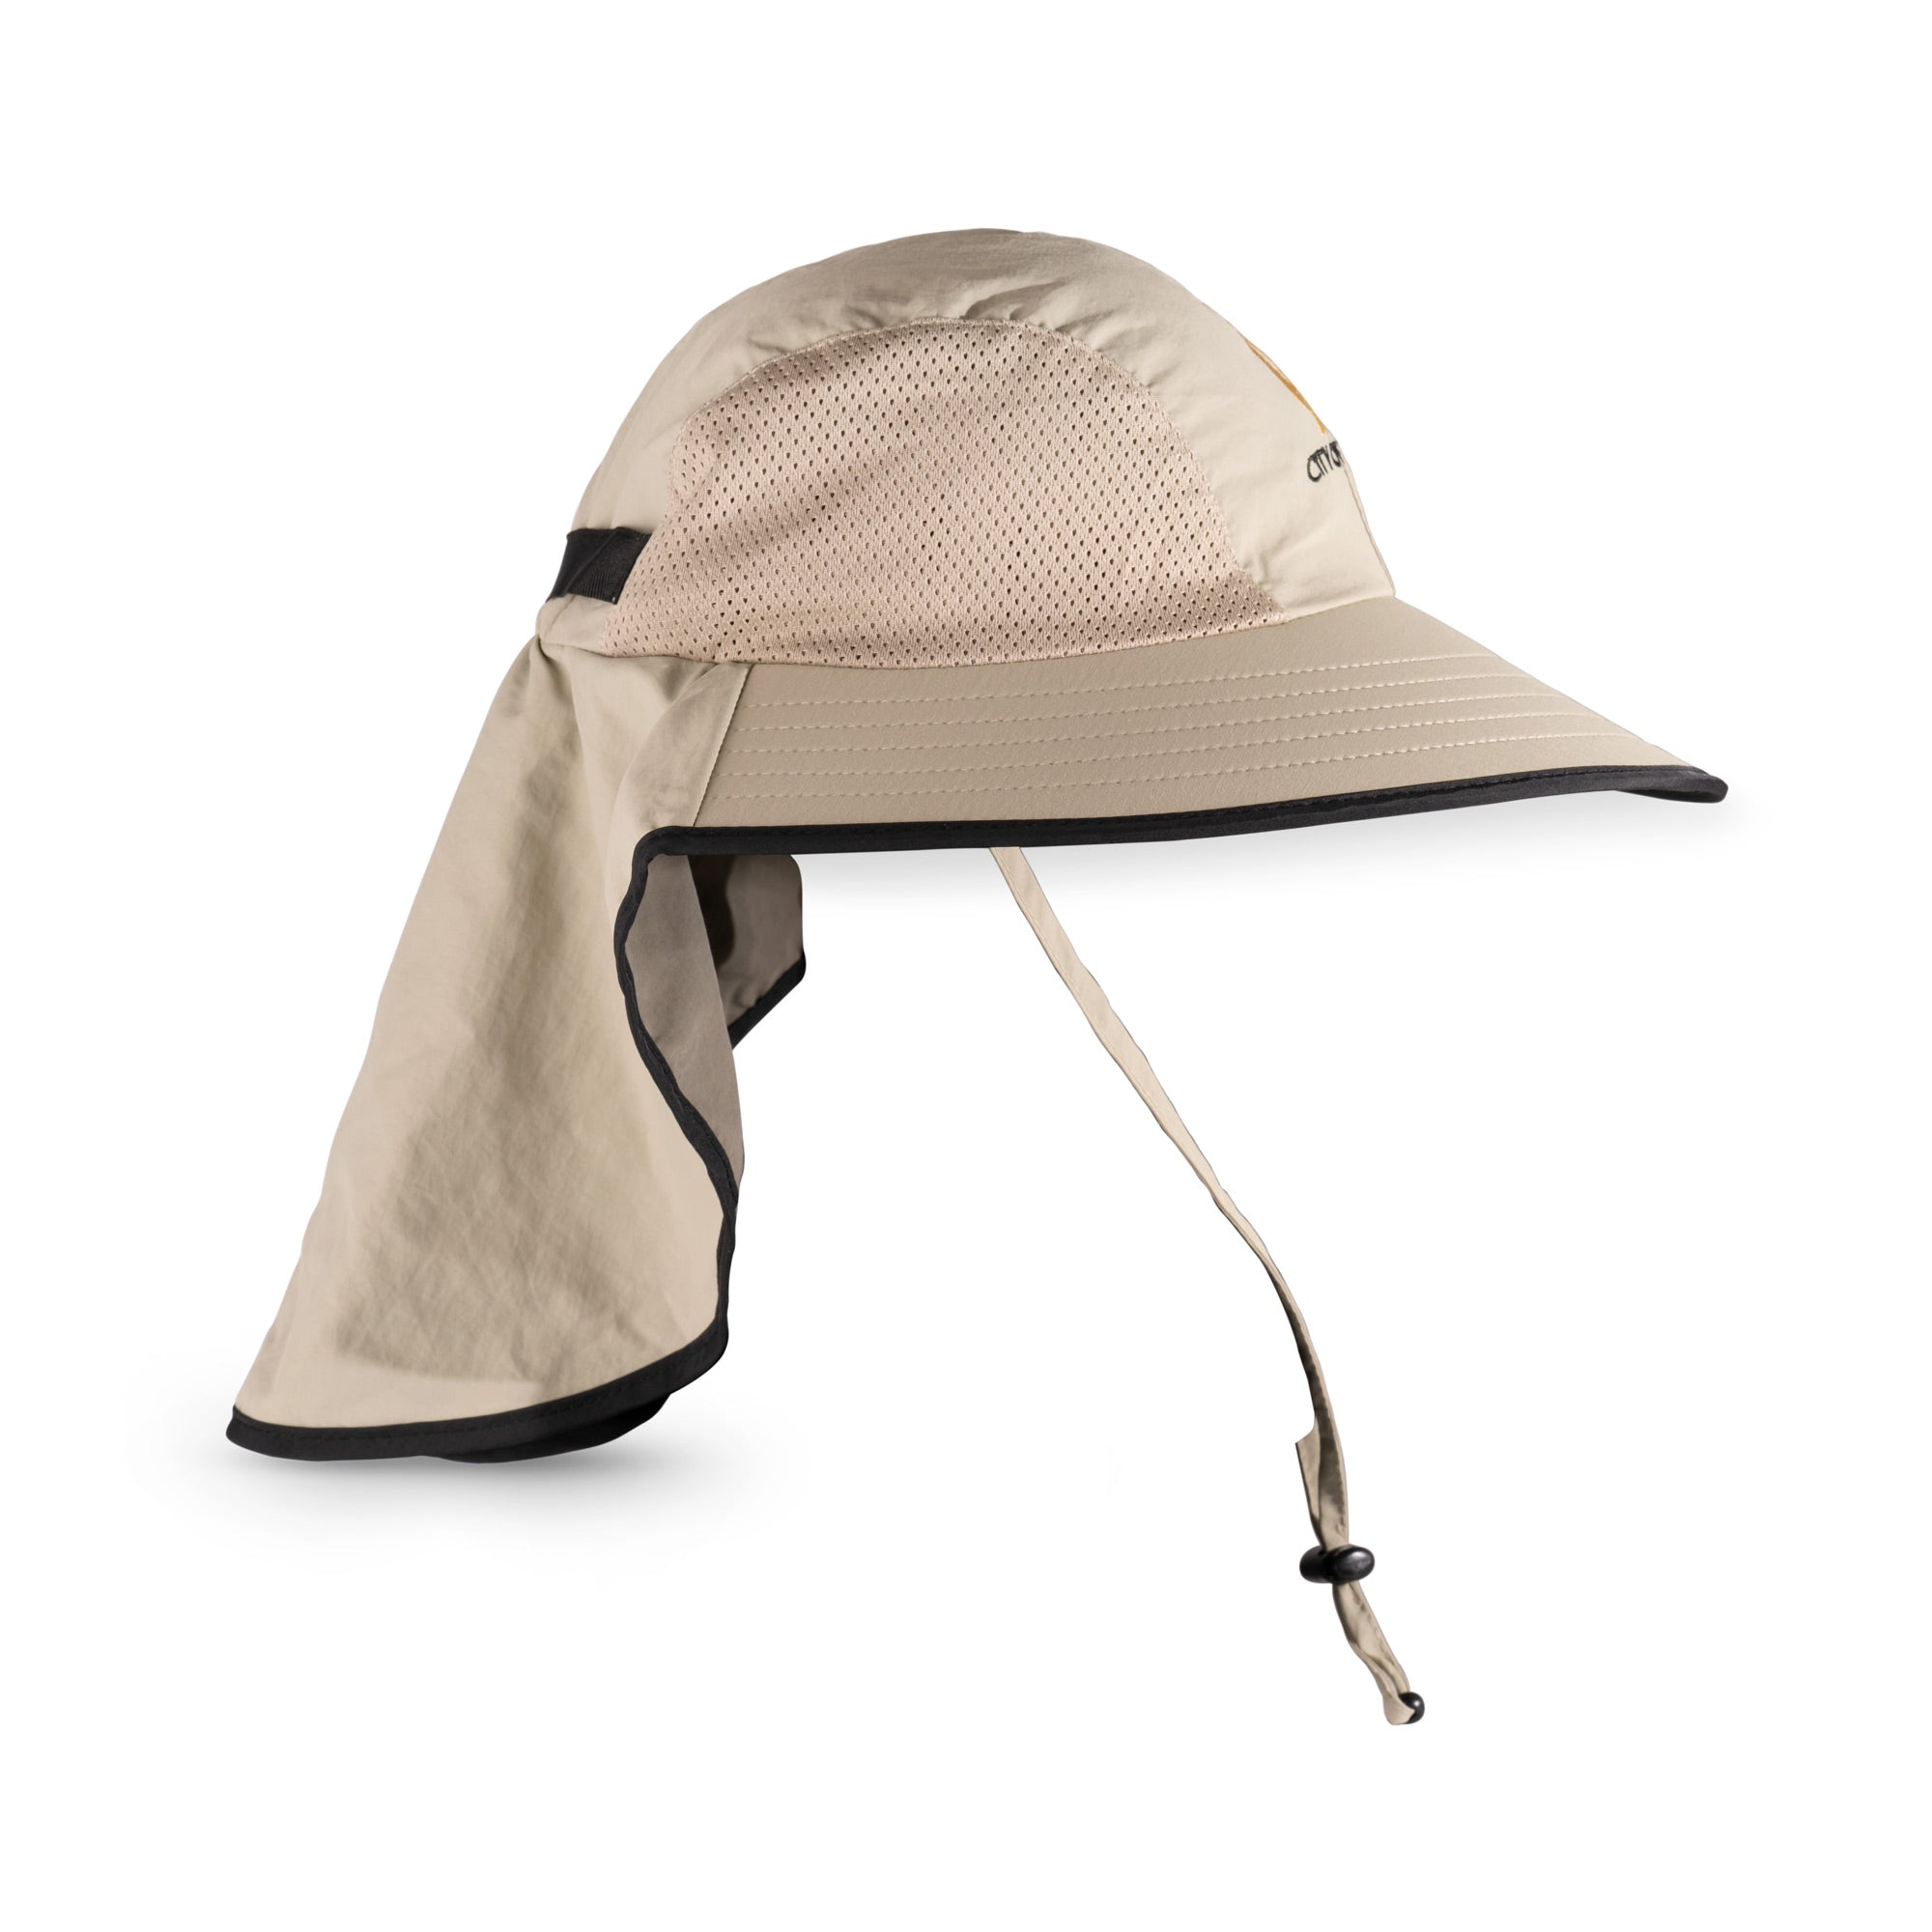 CITY OF DAVID  ADVENTURE HAT UV-PROTECTION